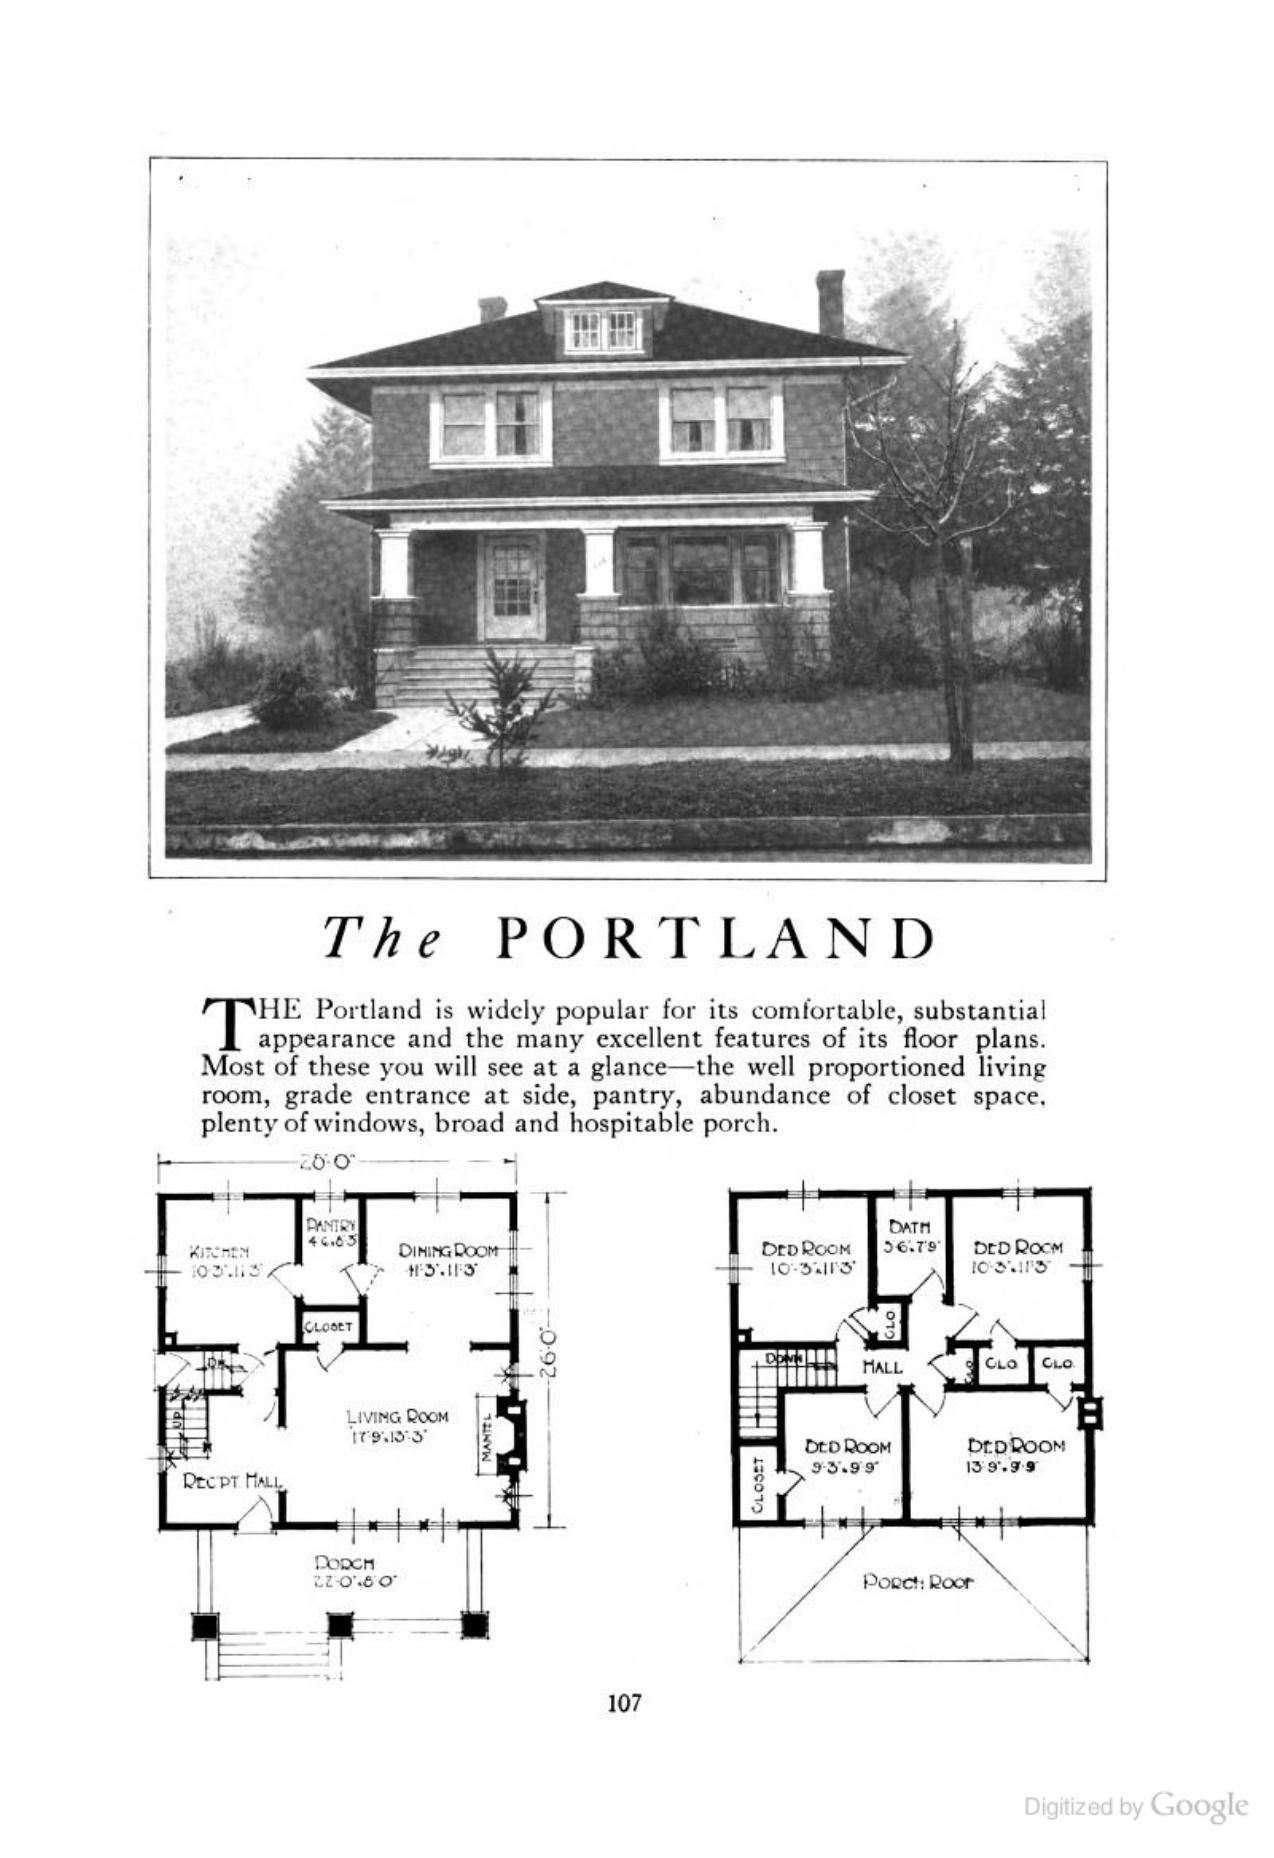 American Foursquare House Plans | The Portland An American Foursquare Kit House House Plan